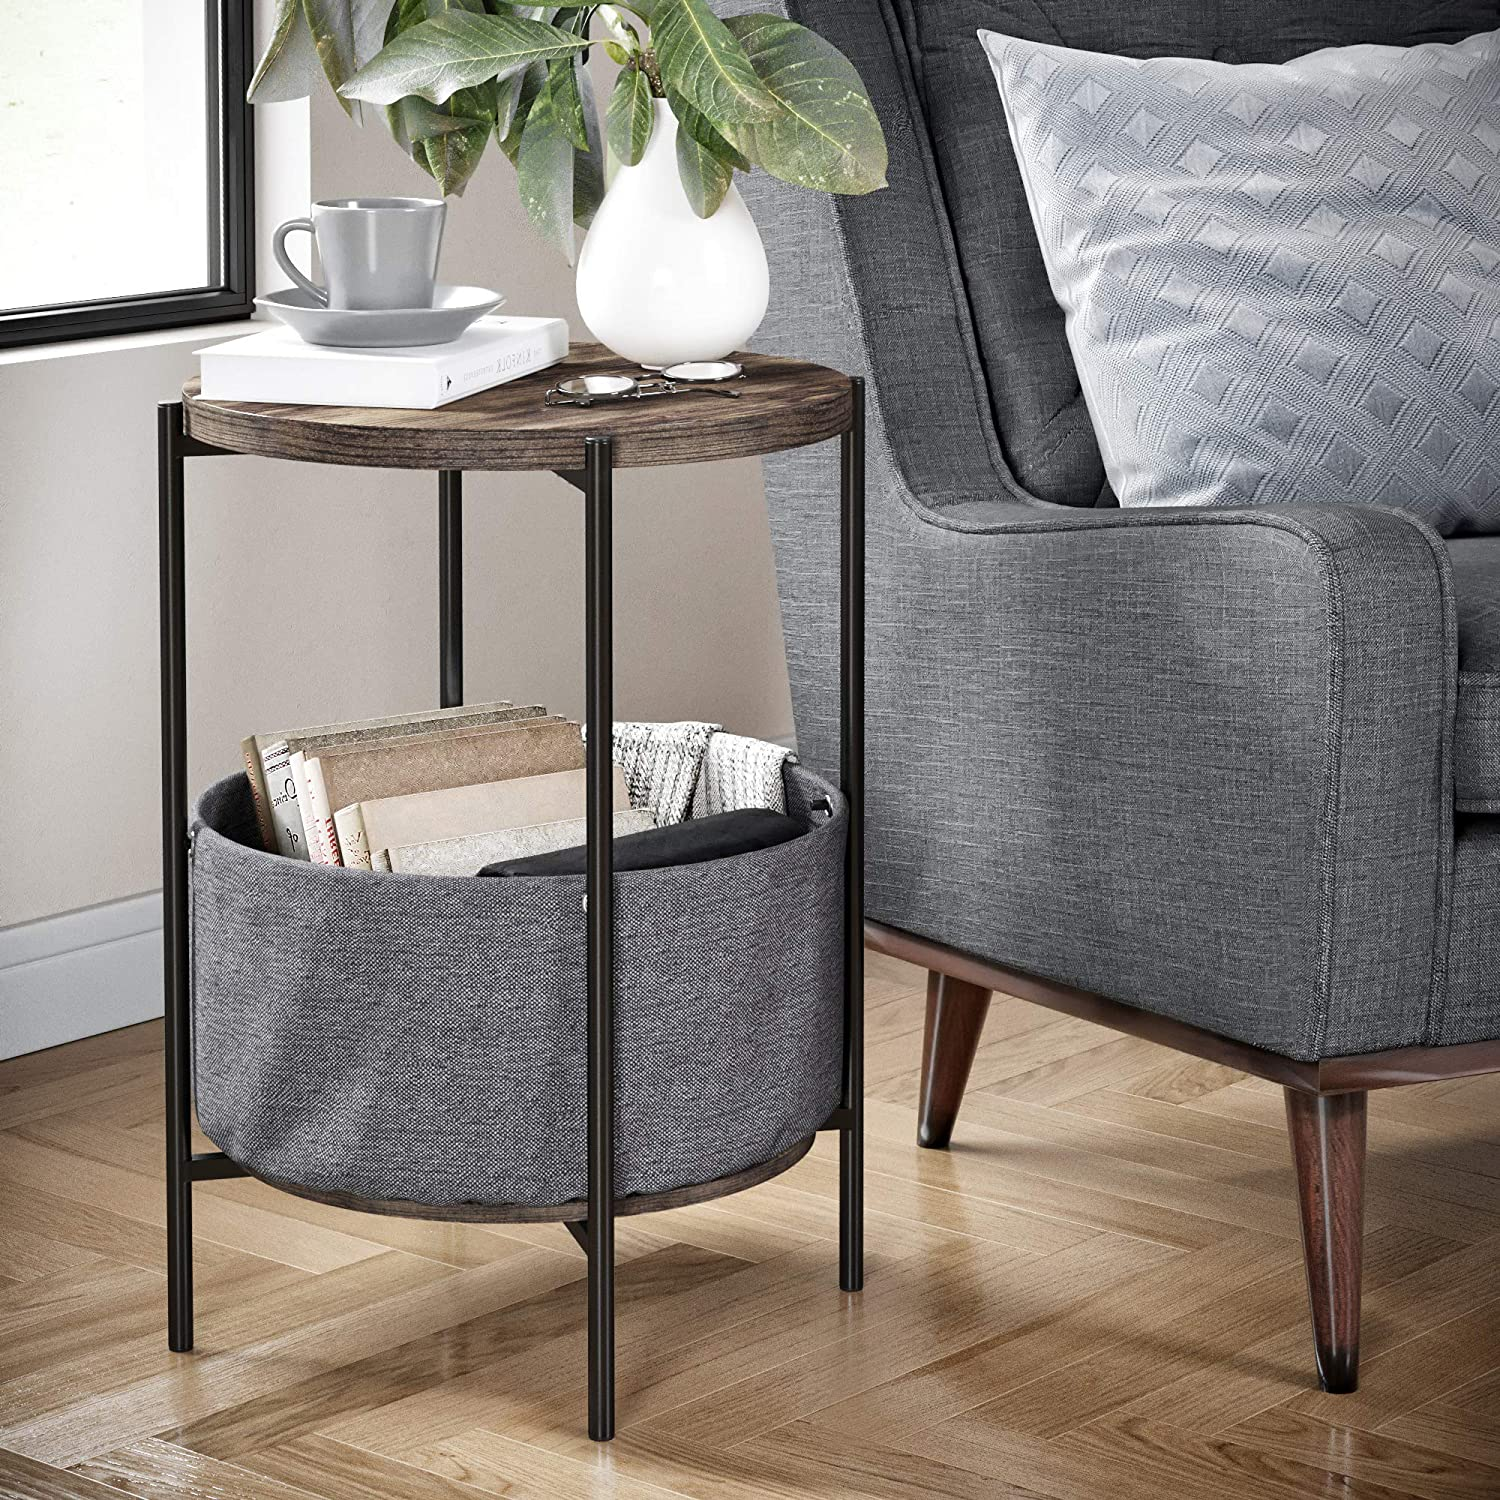 Nathan James 32201 Oraa Round Wood Side Table with Fabric Storage, Gray/Black